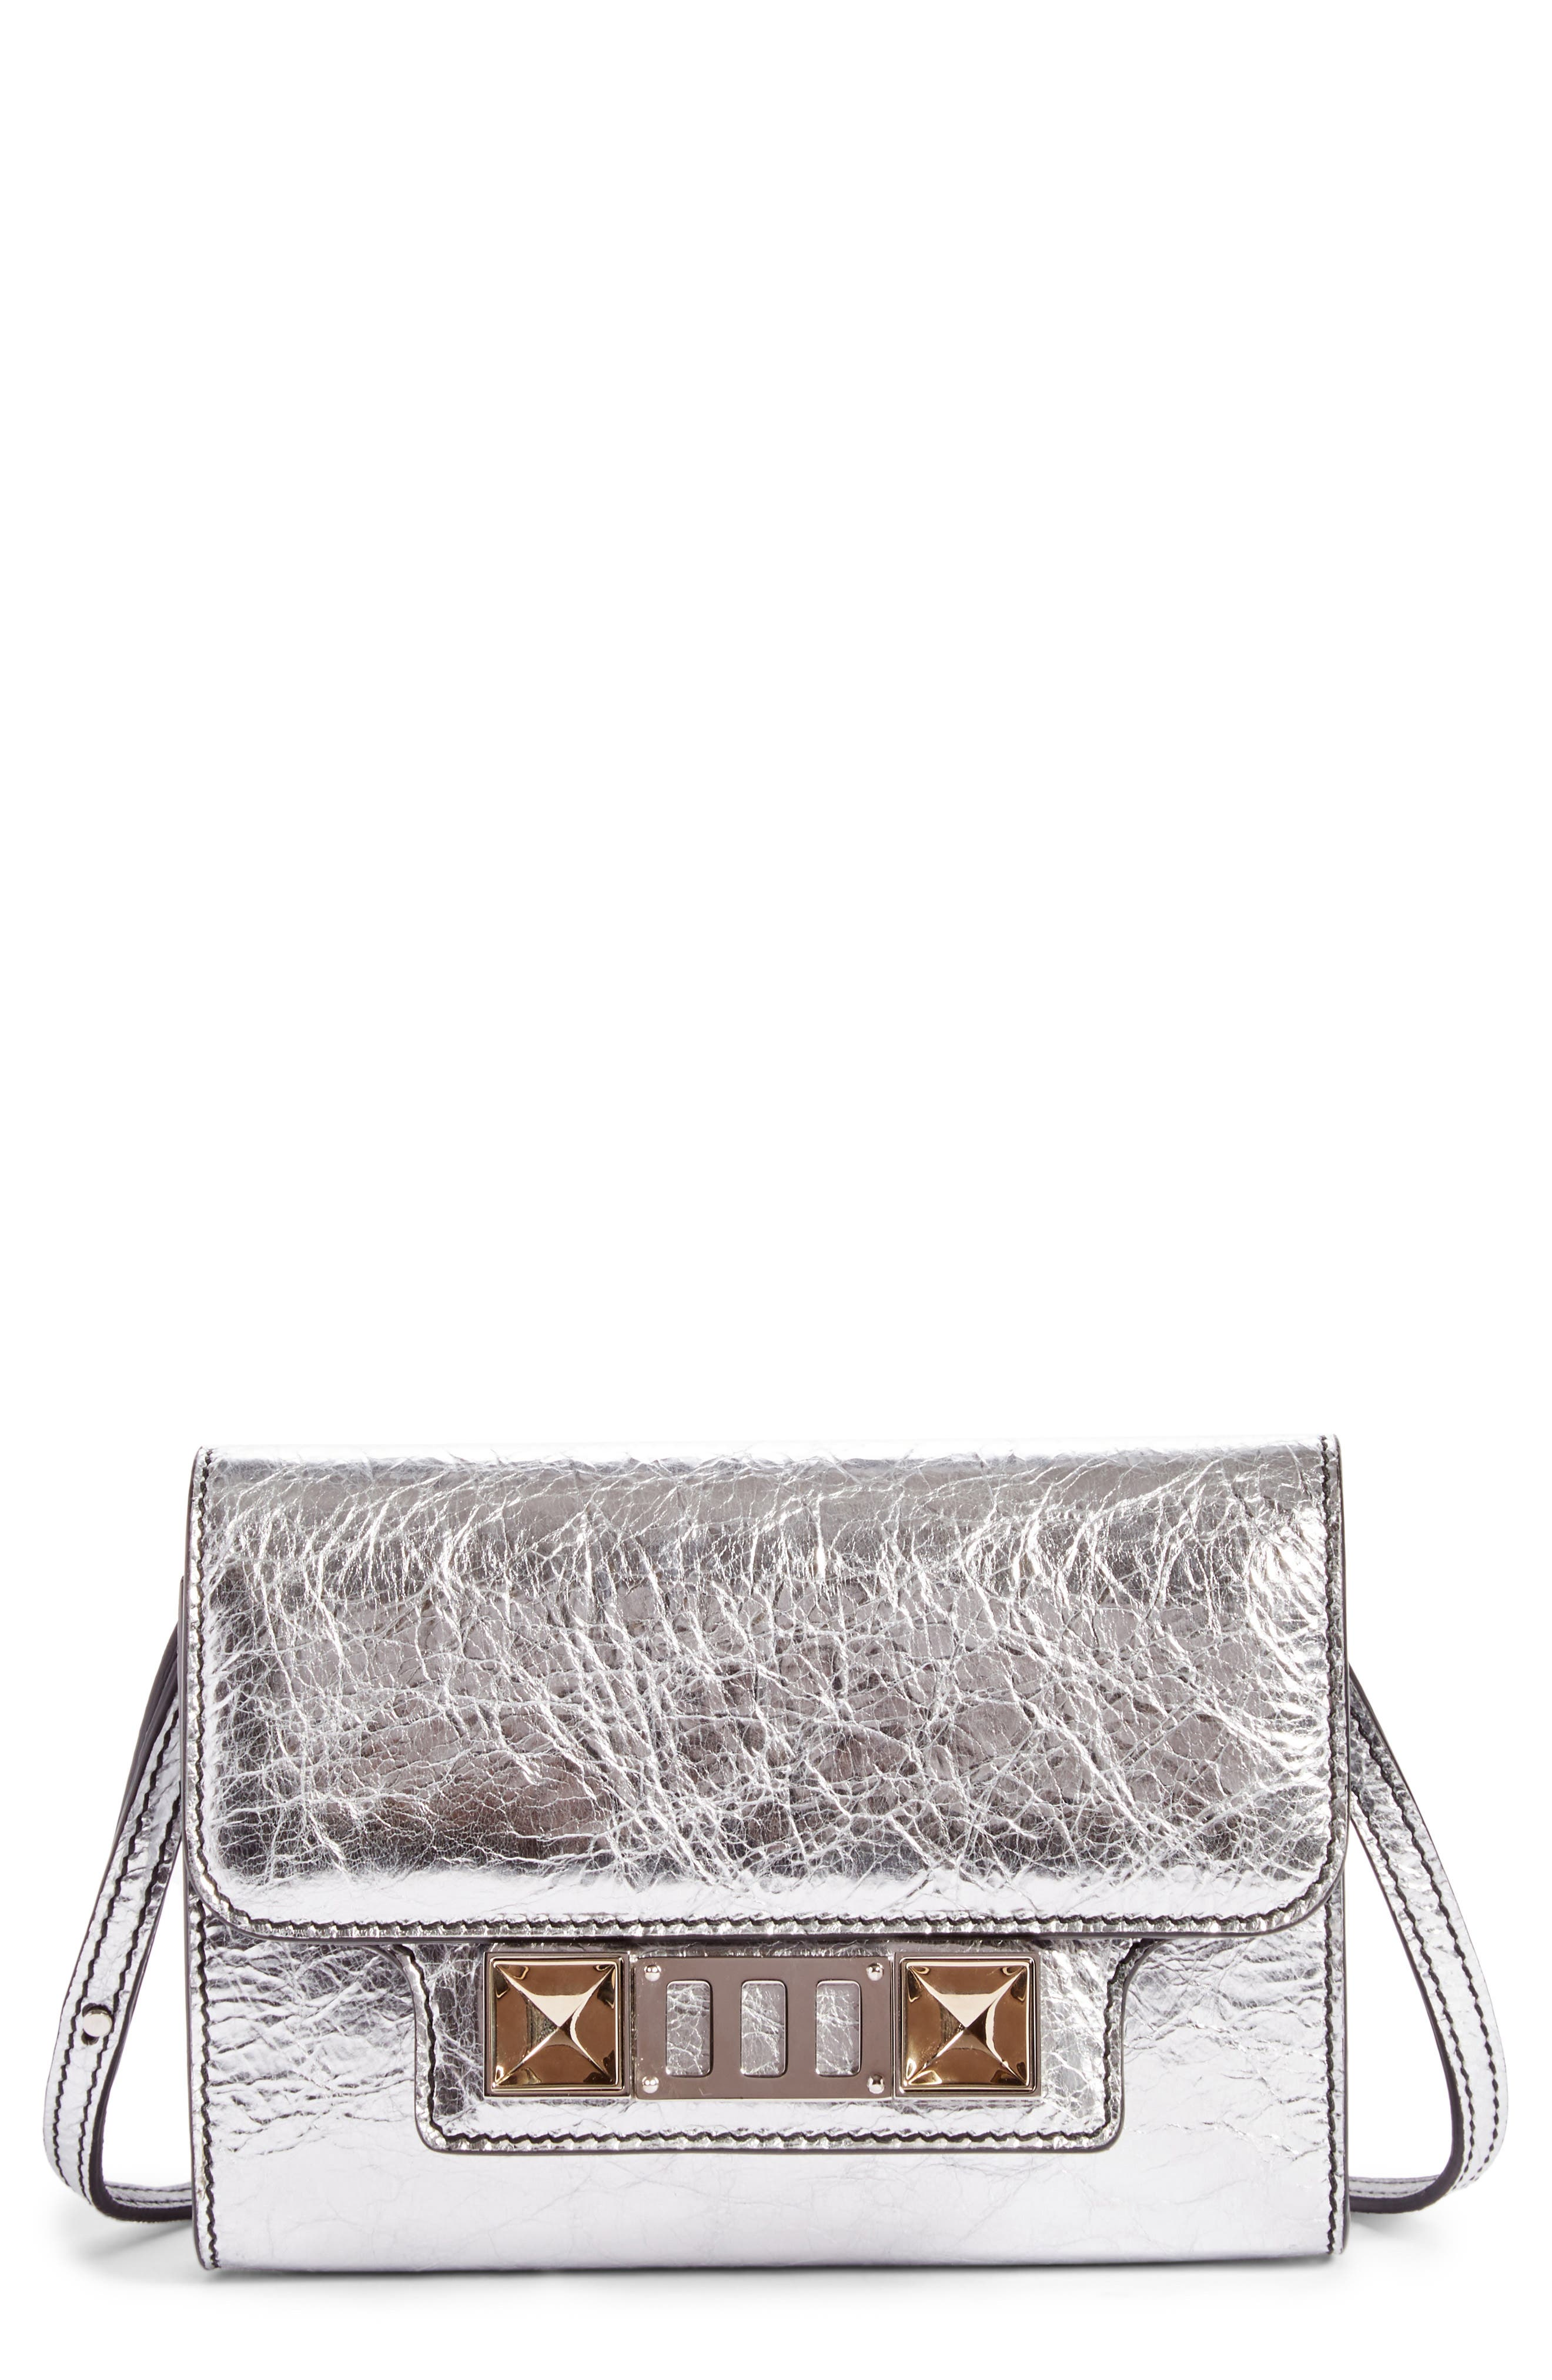 PS11 Leather Crossbody Wallet,                             Main thumbnail 1, color,                             Silver